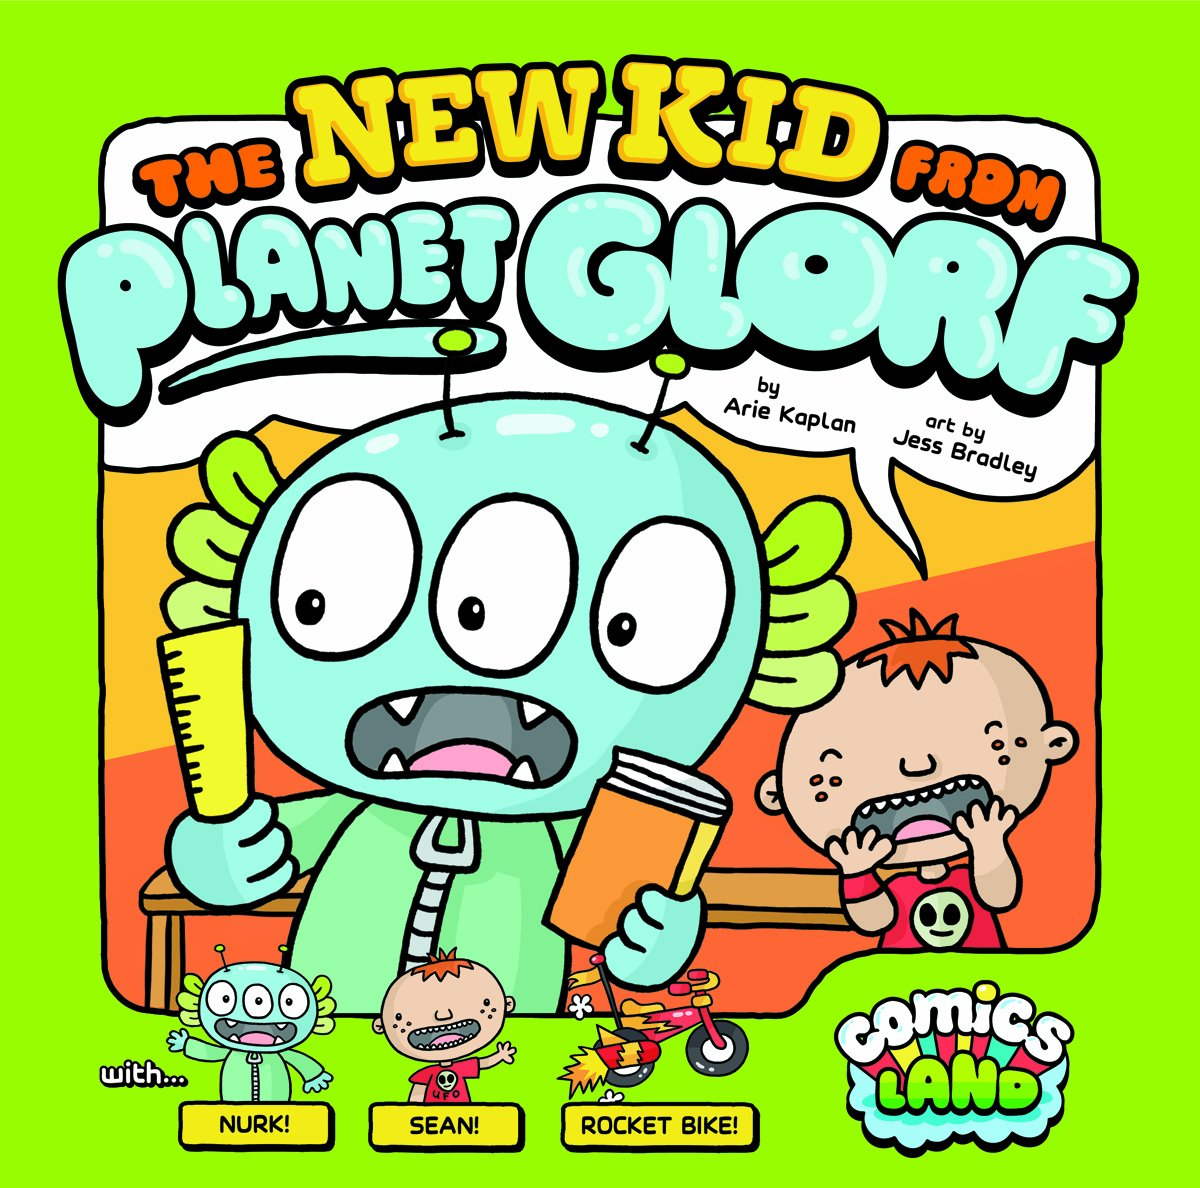 The New Kid from Planet Glorf (Comics Land)